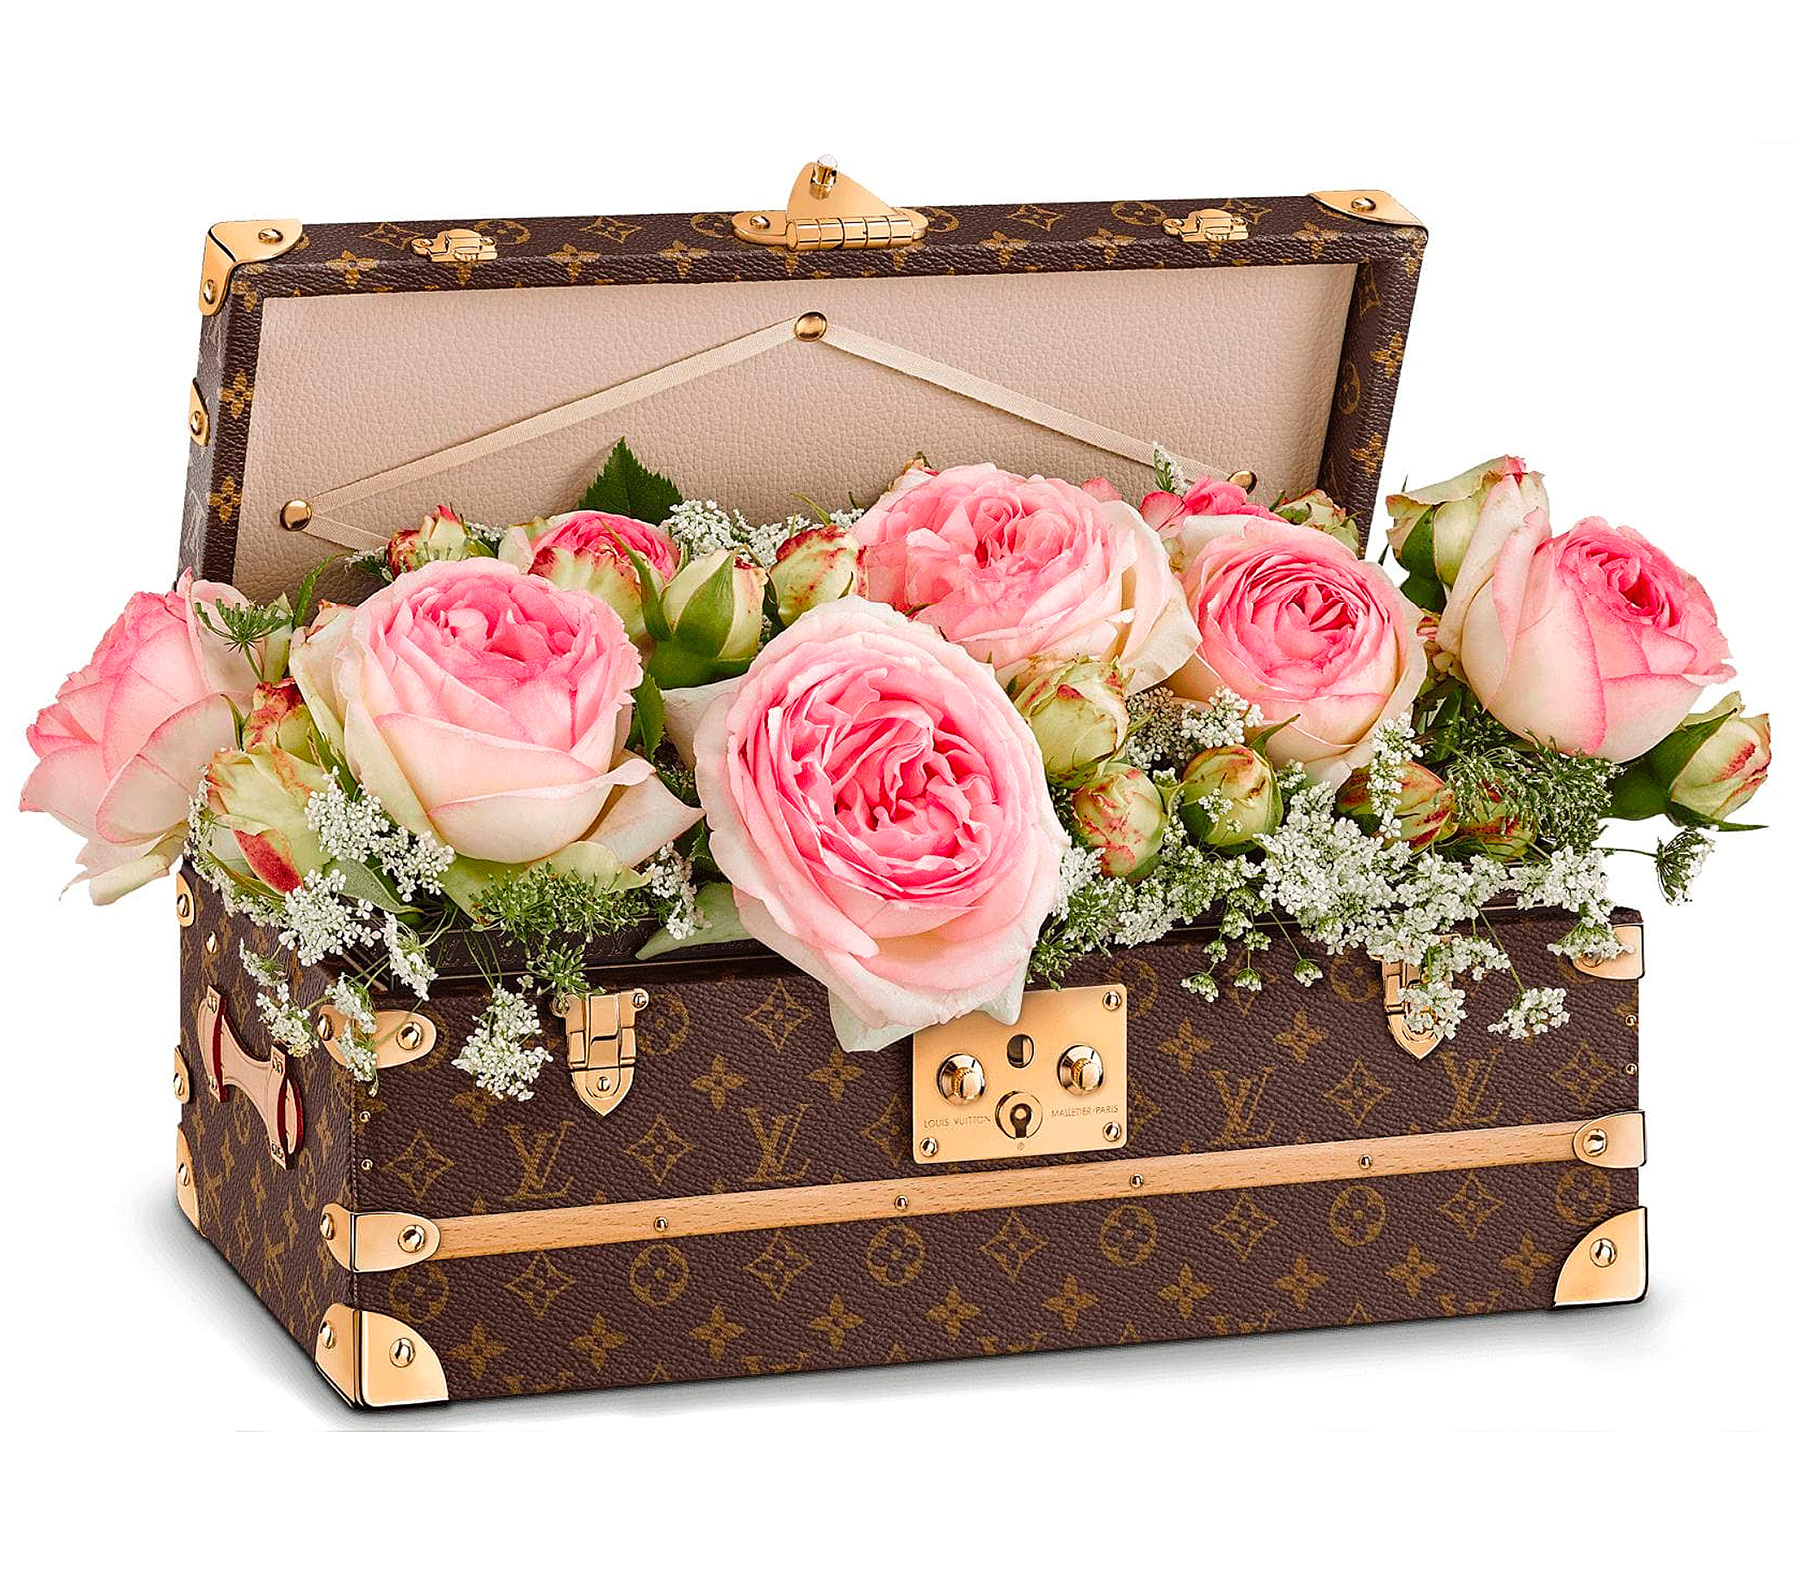 Malle Fleurs - A romantic piece rooted in Louis Vuitton history, the Malle Fleurs is a reinterpretation of an iconic piece created in the 1910s for our very best clients: the flower trunk. The water-resistant metallic tray and Vuittonite lining mean that flowers, water, or soil can be put in the tray without damaging it.